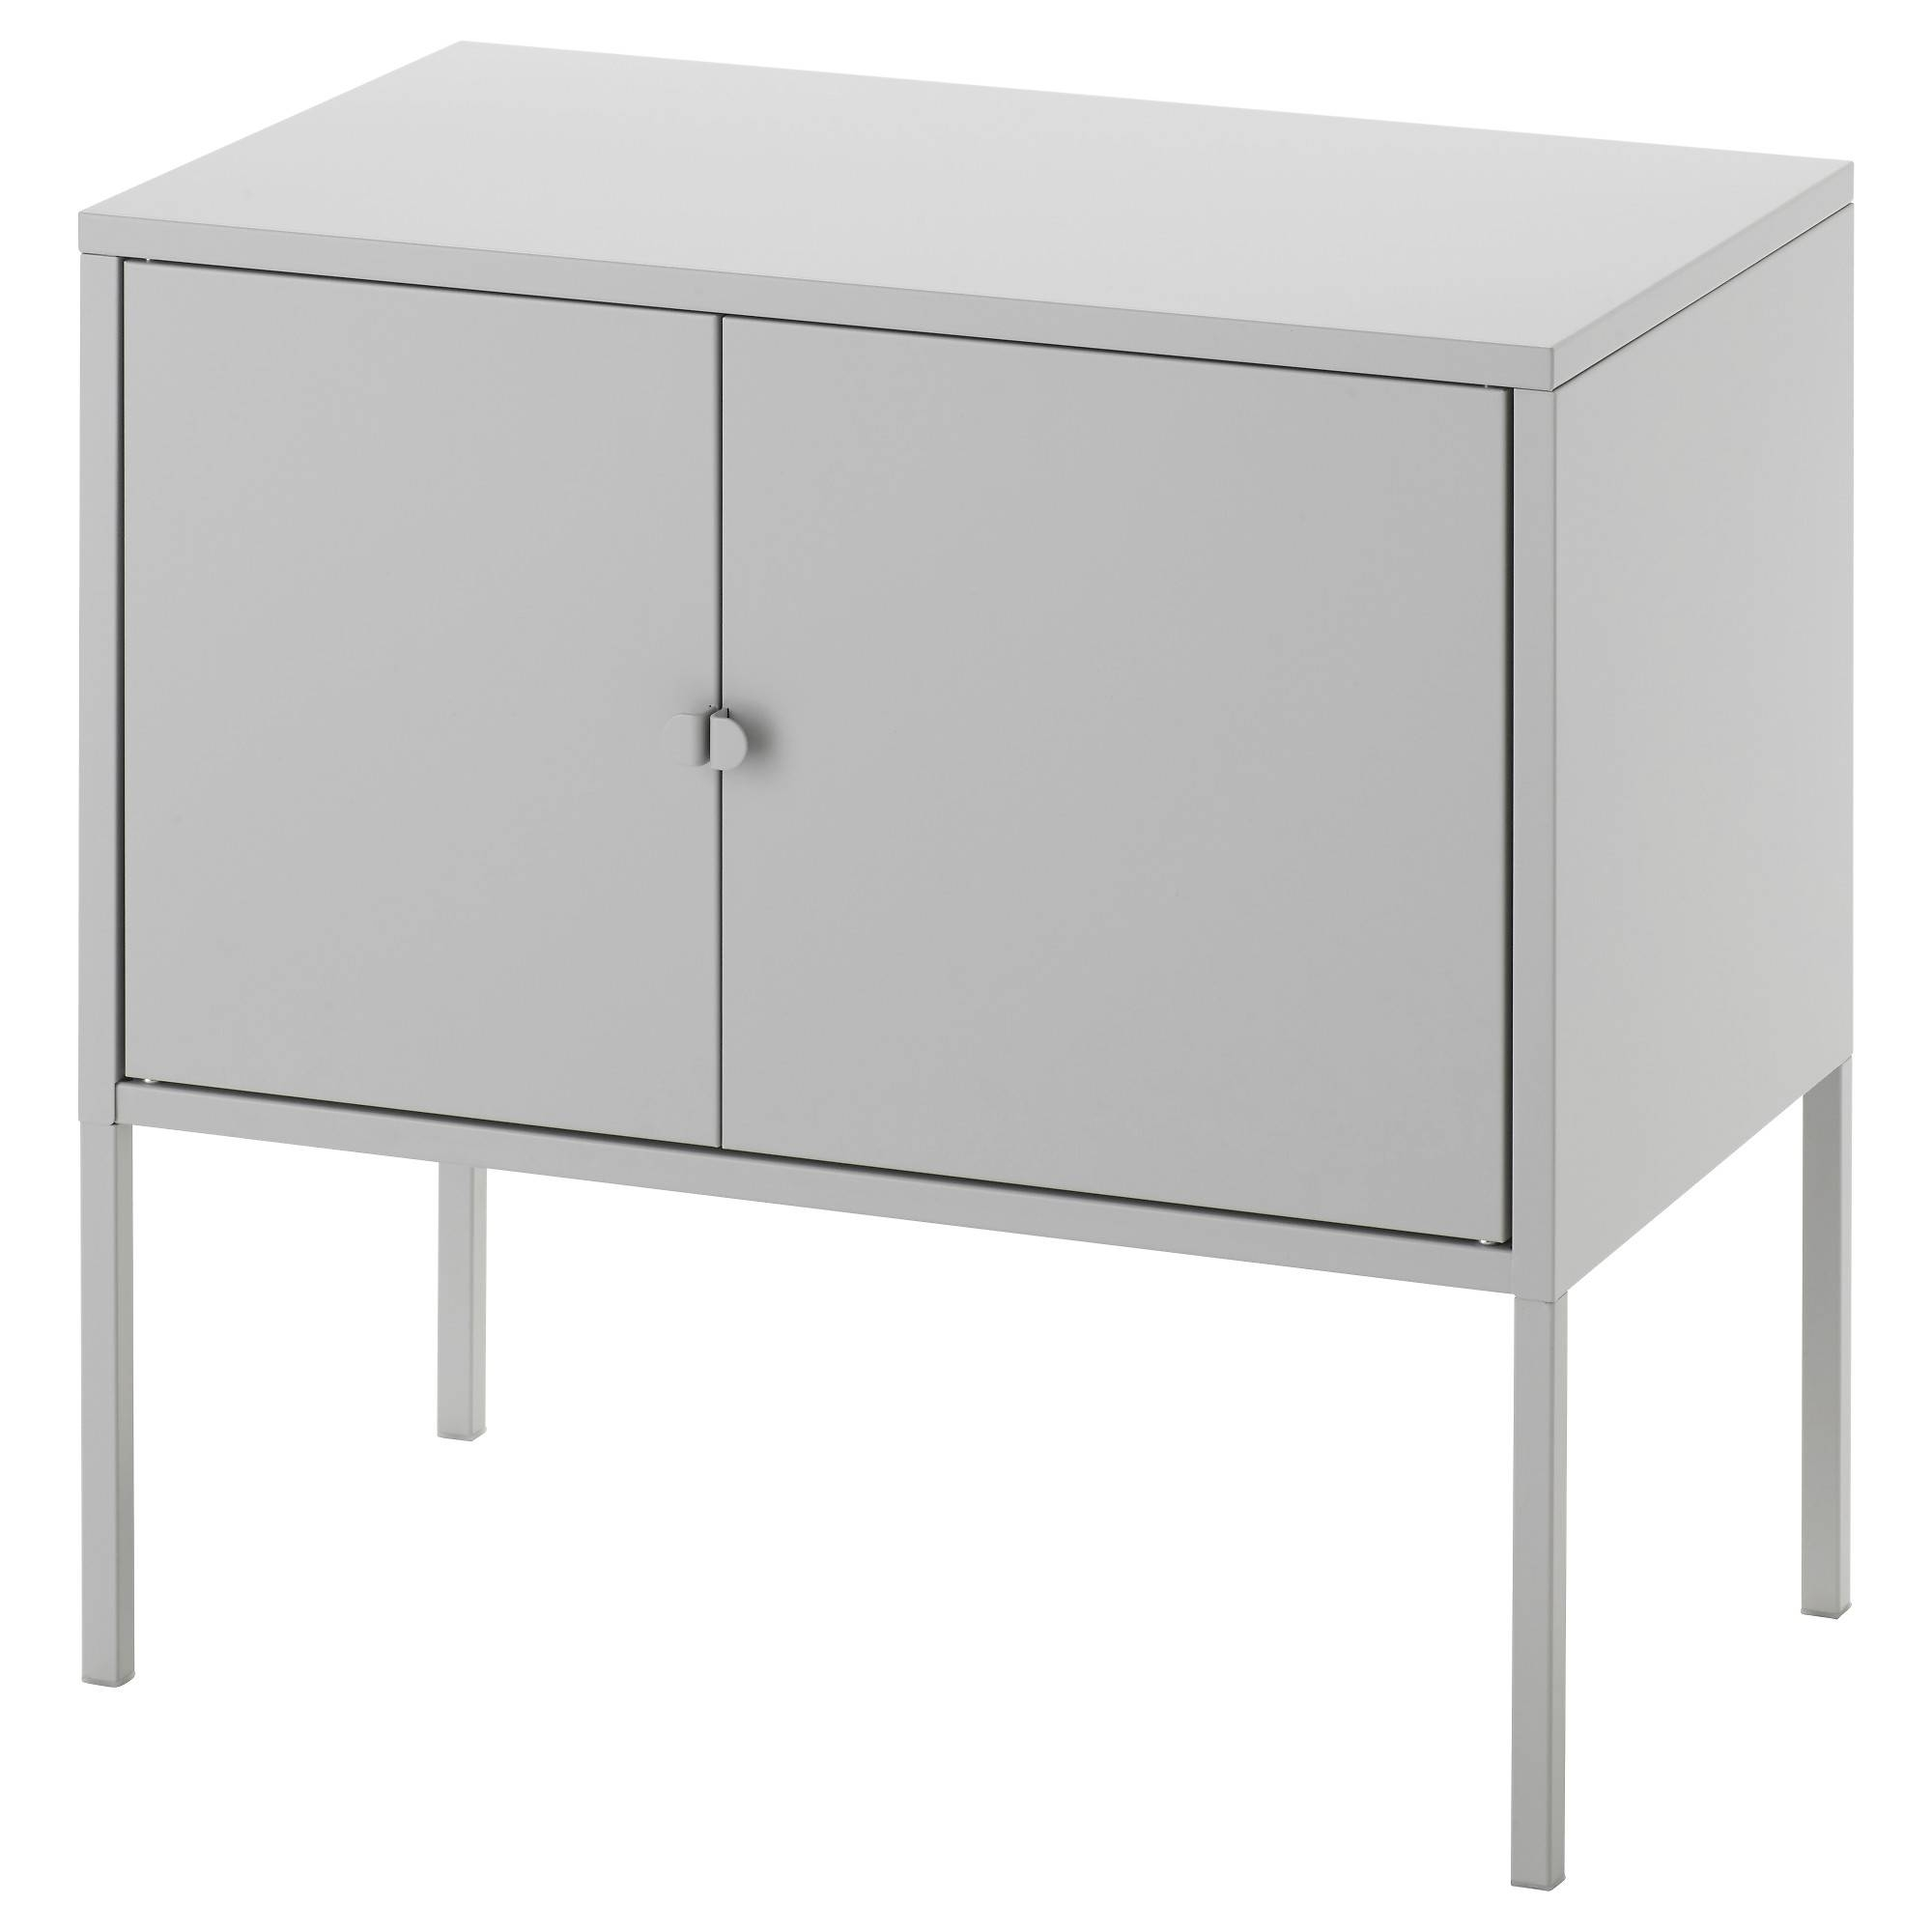 Cabinets & Sideboards – Ikea With Regard To Shallow Sideboard Cabinet (#7 of 20)